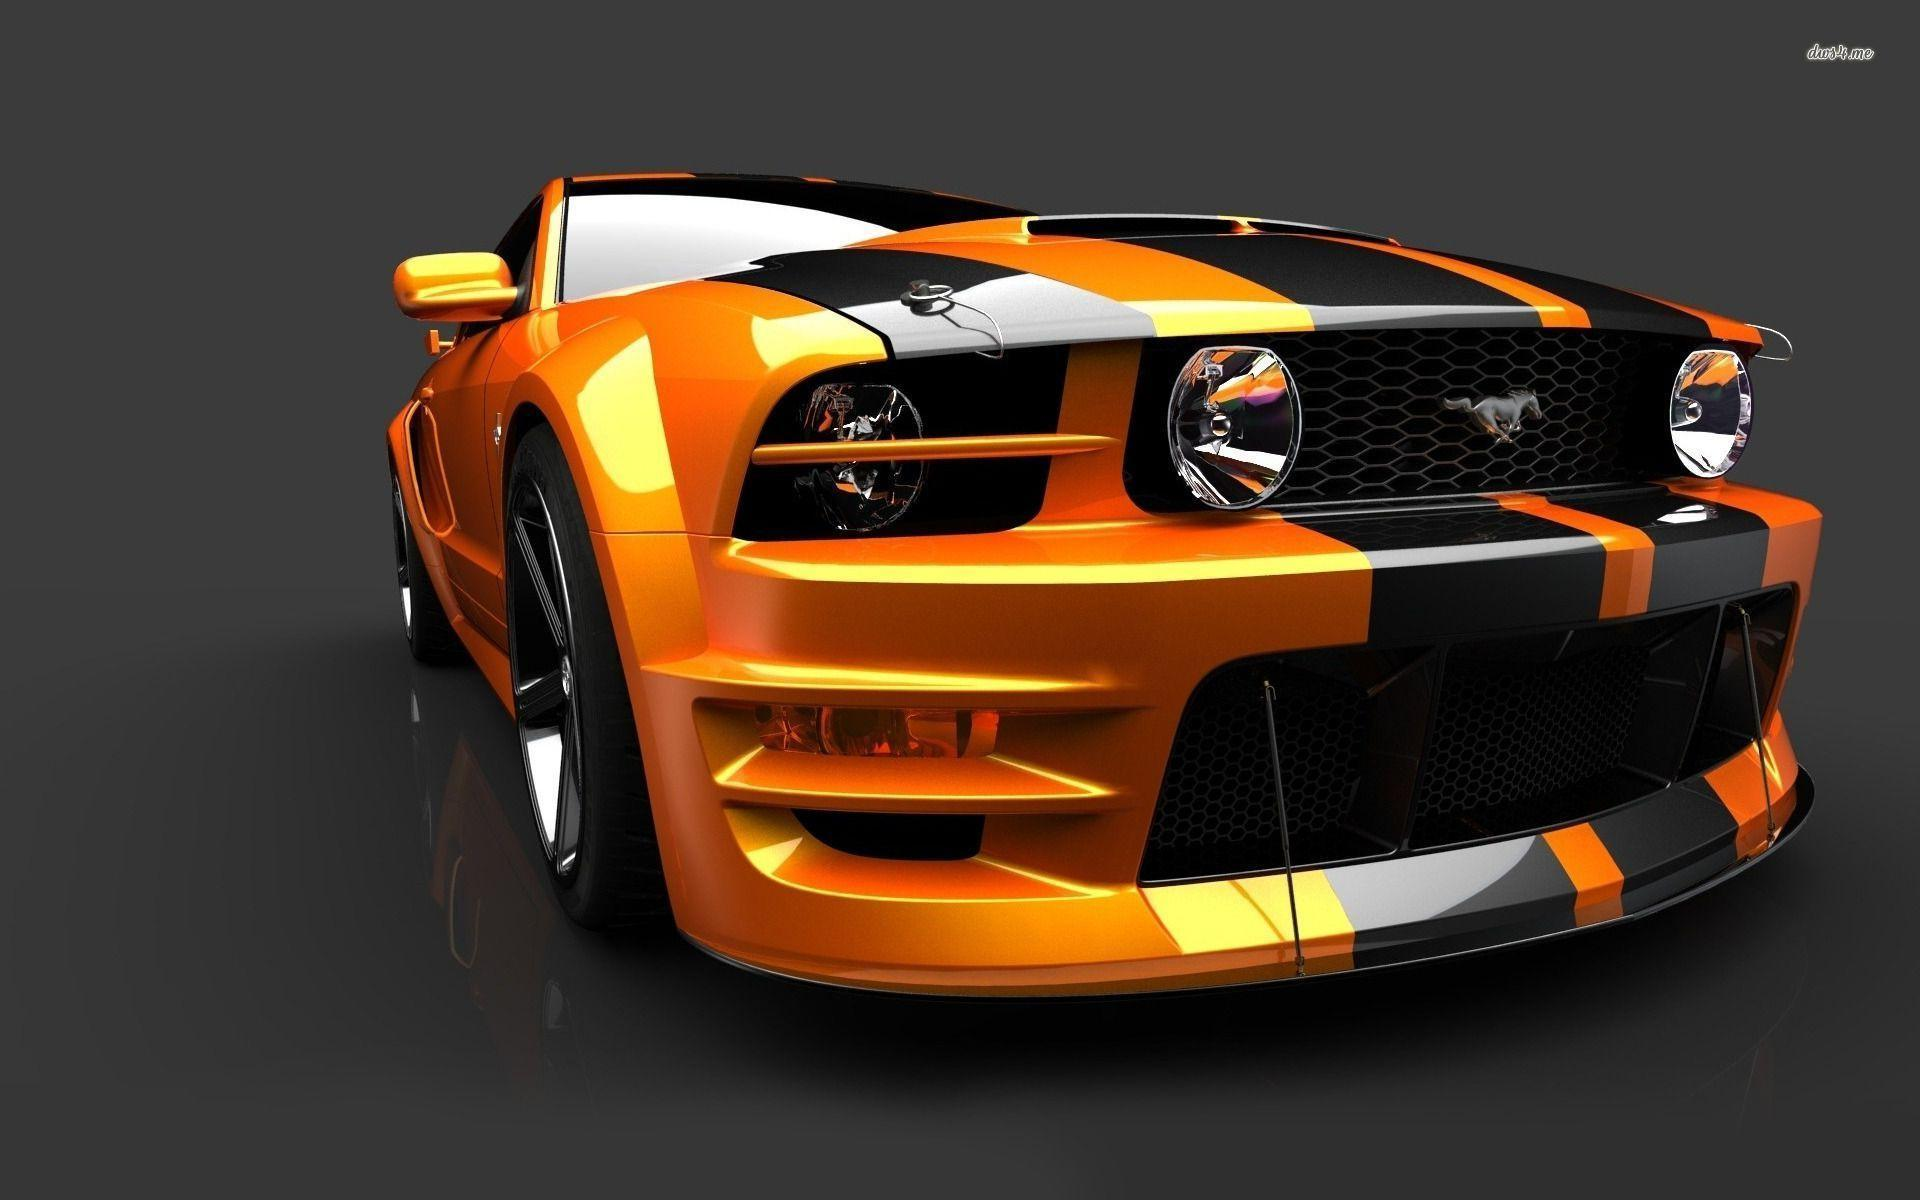 Ford mustang wallpapers wallpaper cave - Ford mustang wallpaper download ...